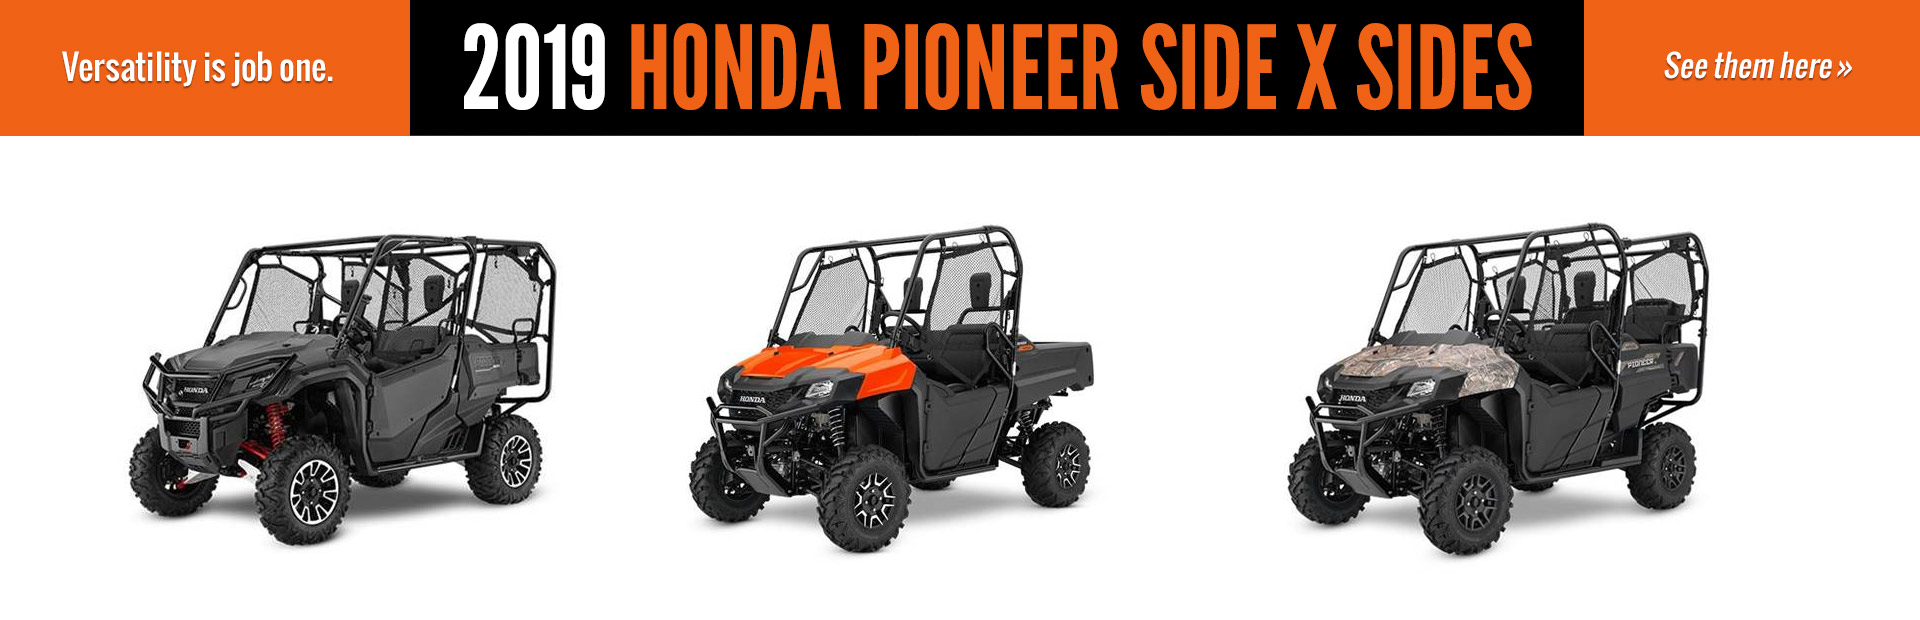 SD's Powersports Supercenter - New & Used Bikes, ATVs, Side